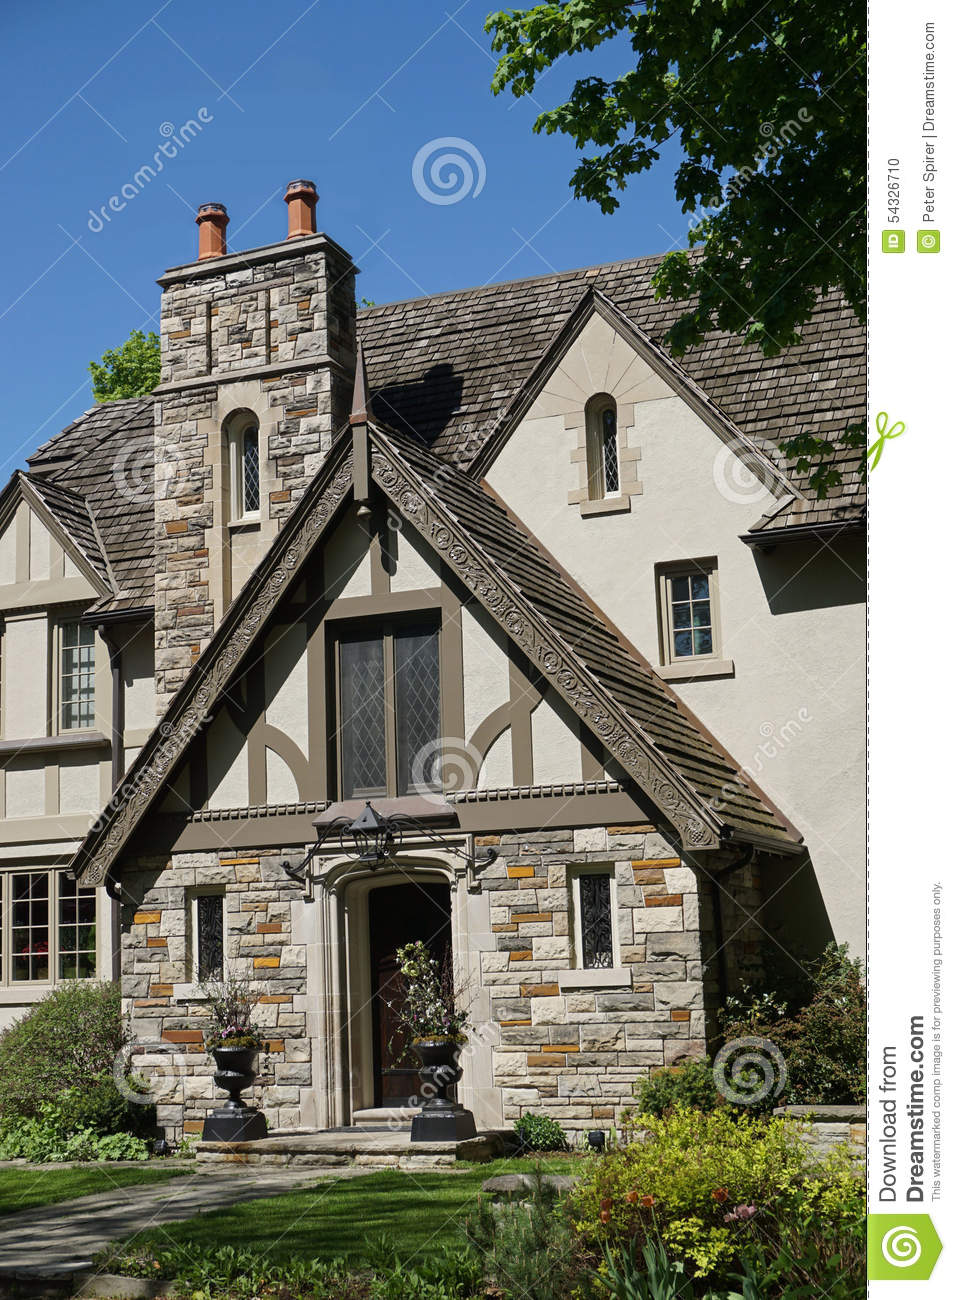 tudor style house entrance stock photo image 54326710